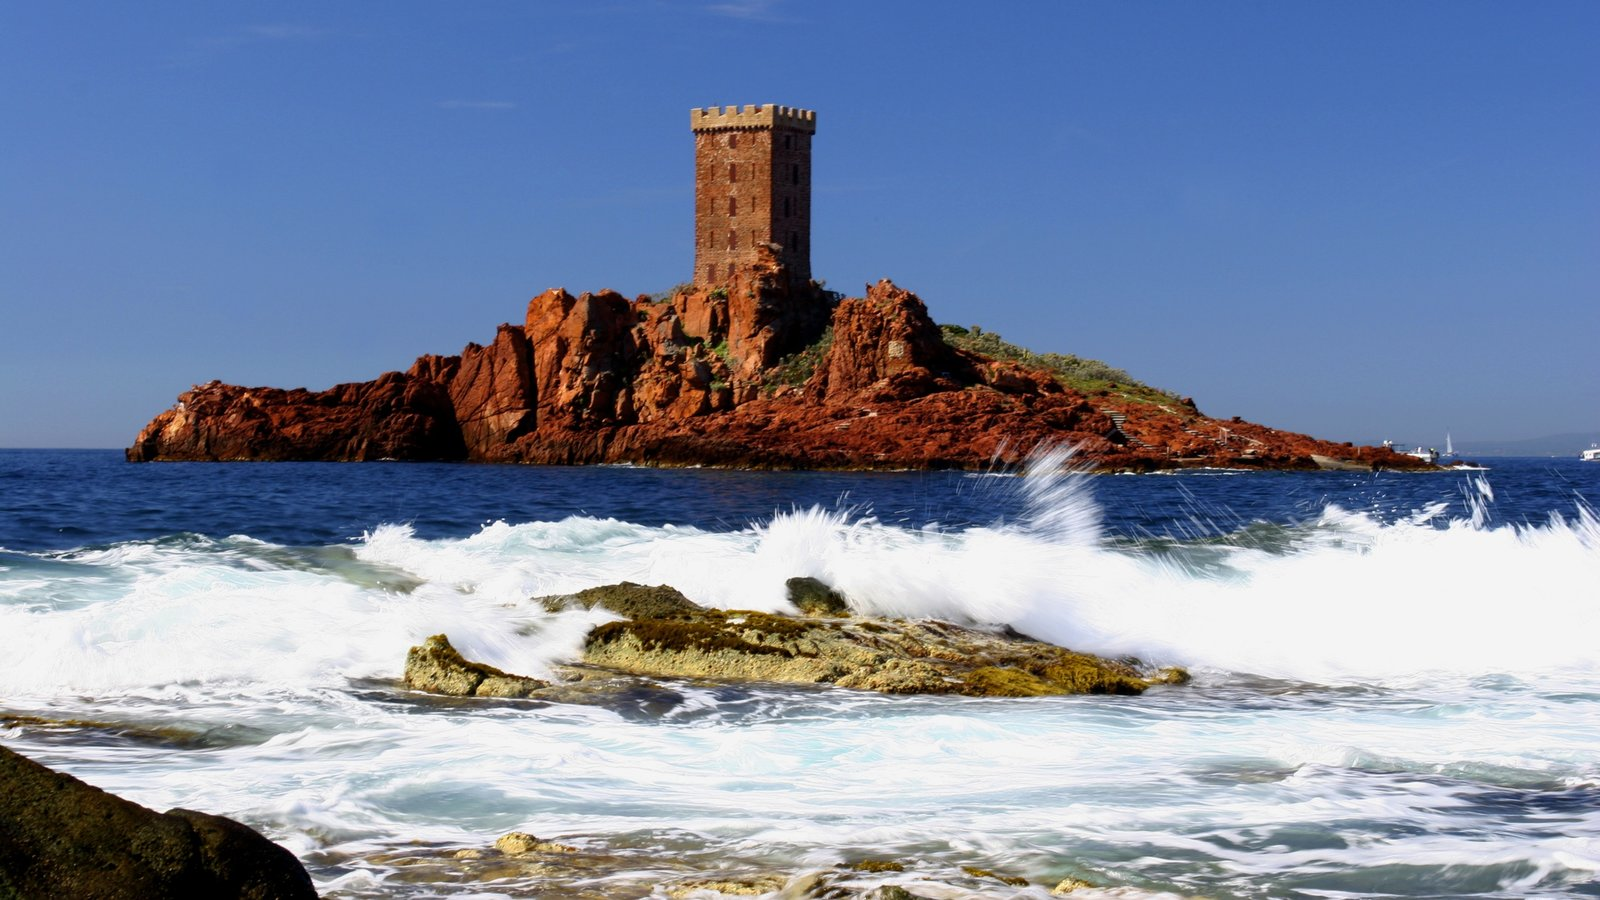 Saint-Raphael which includes heritage architecture, island images and a castle